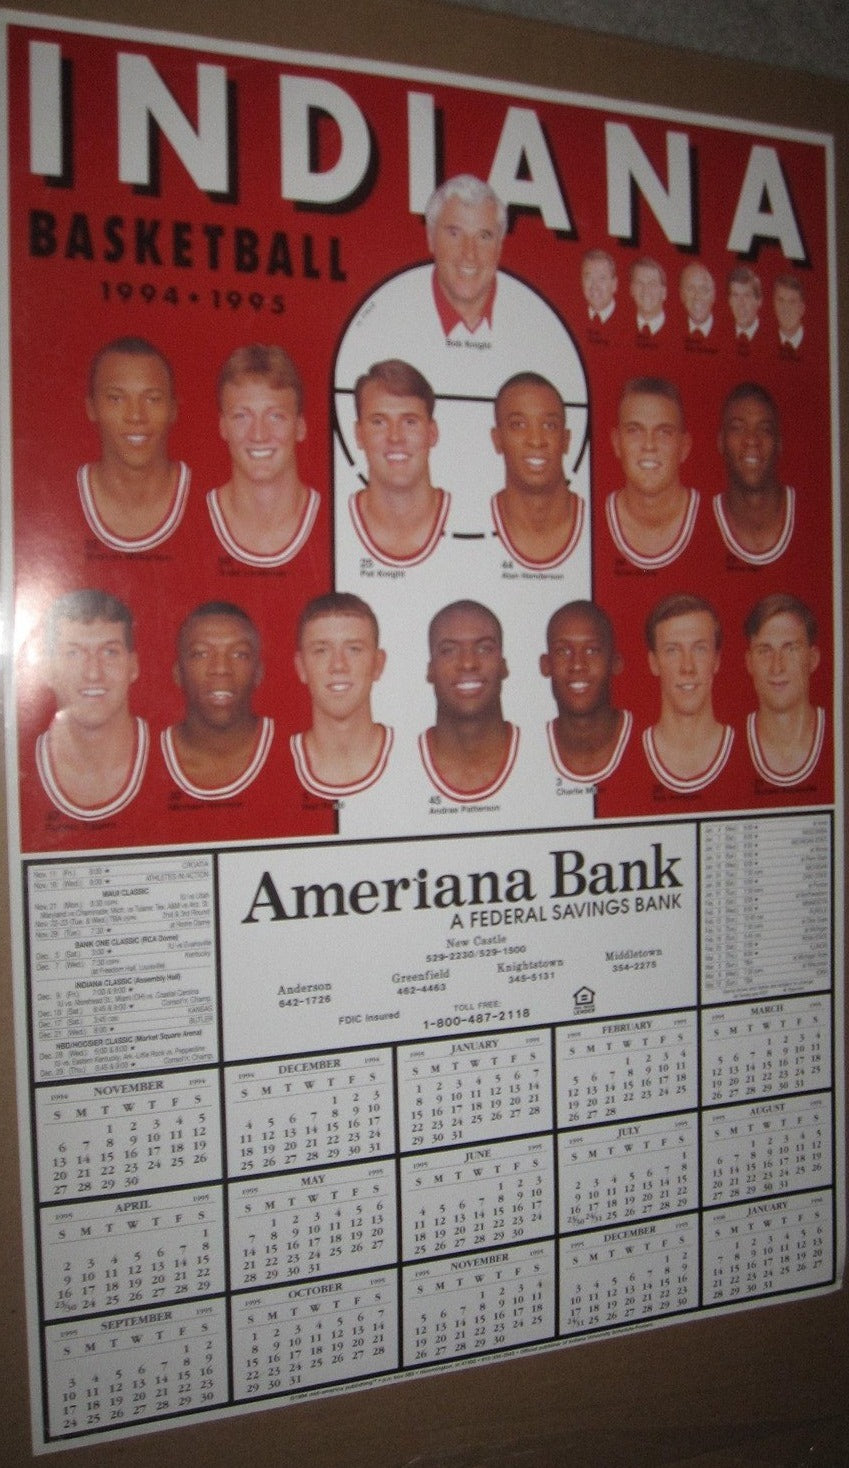 1994-95 Indiana University Basketball Schedule Poster, 11x17 - Vintage Indy Sports